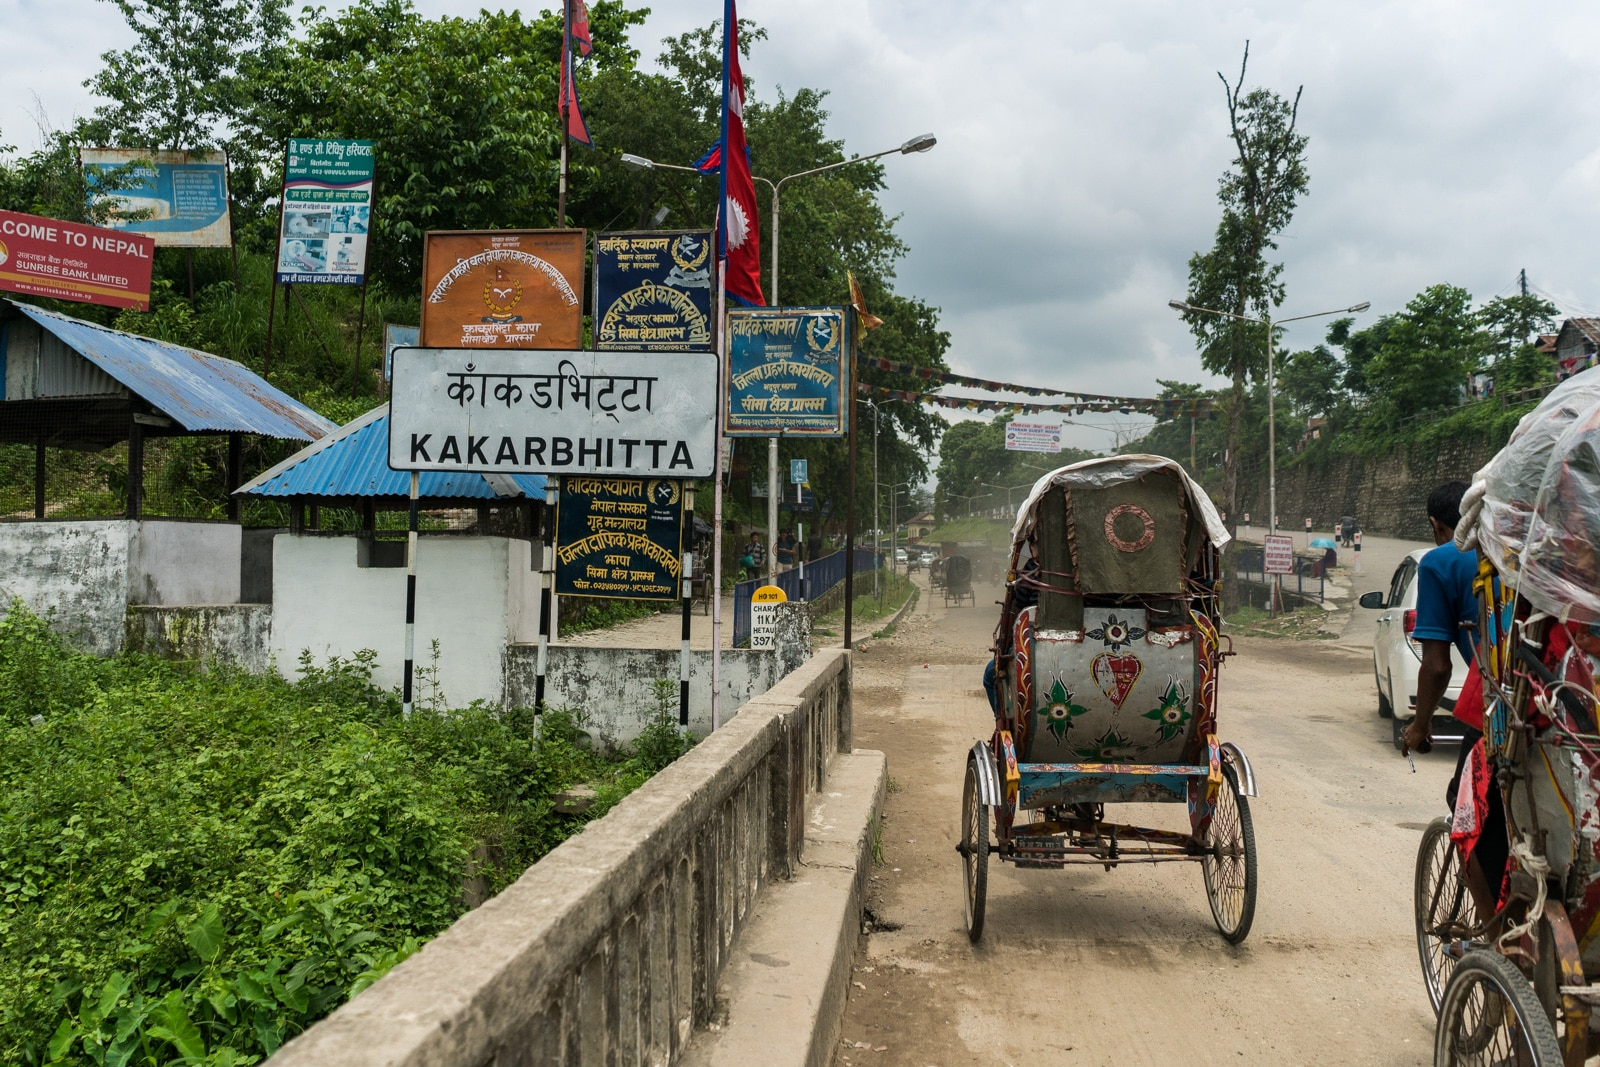 India - Nepal border crossing at Panitanki - Kakarbhitta - Entering Nepal - Lost With Purpose